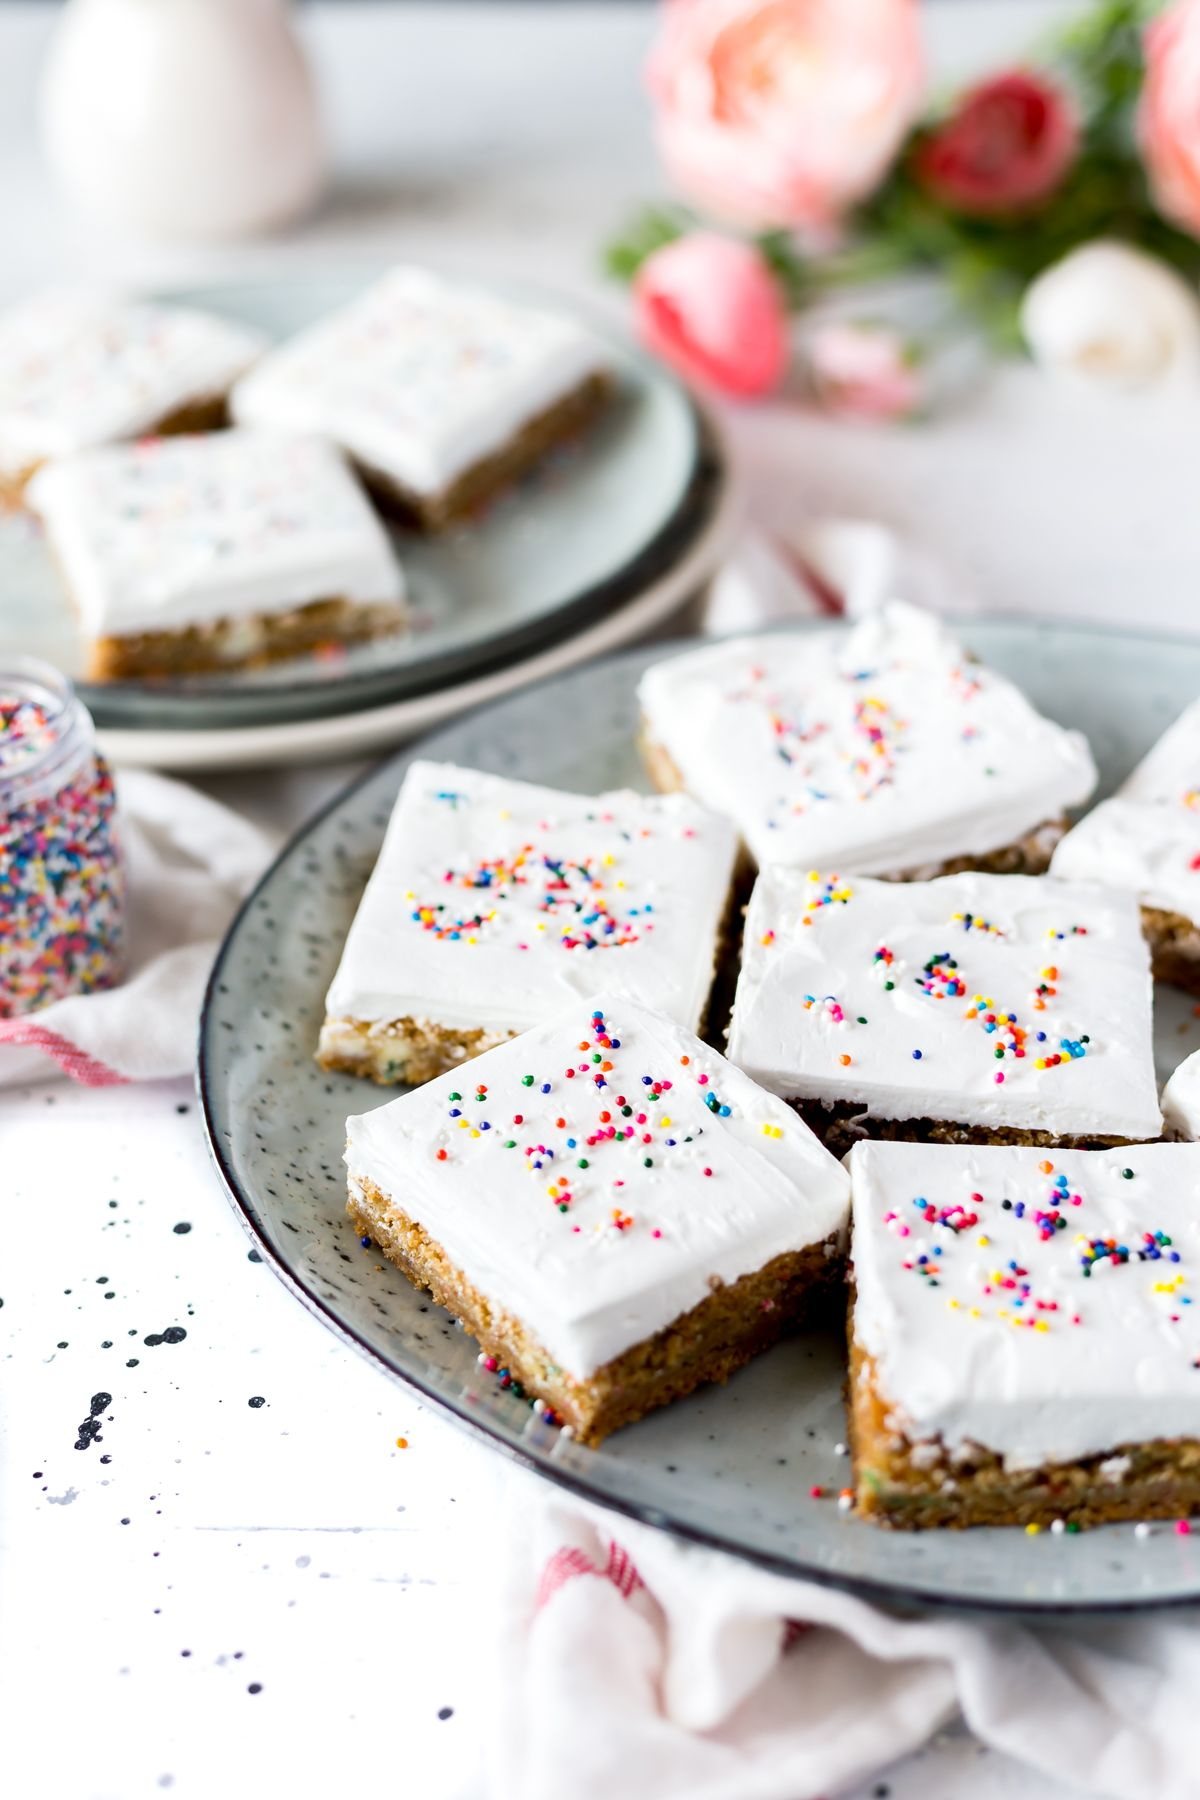 Who Couldnt Use Some Frosted Funfetti Birthday Cake Cookie Bars In Their Life Put This Dessert Your Easy Recipes Arsenal And Enjoy